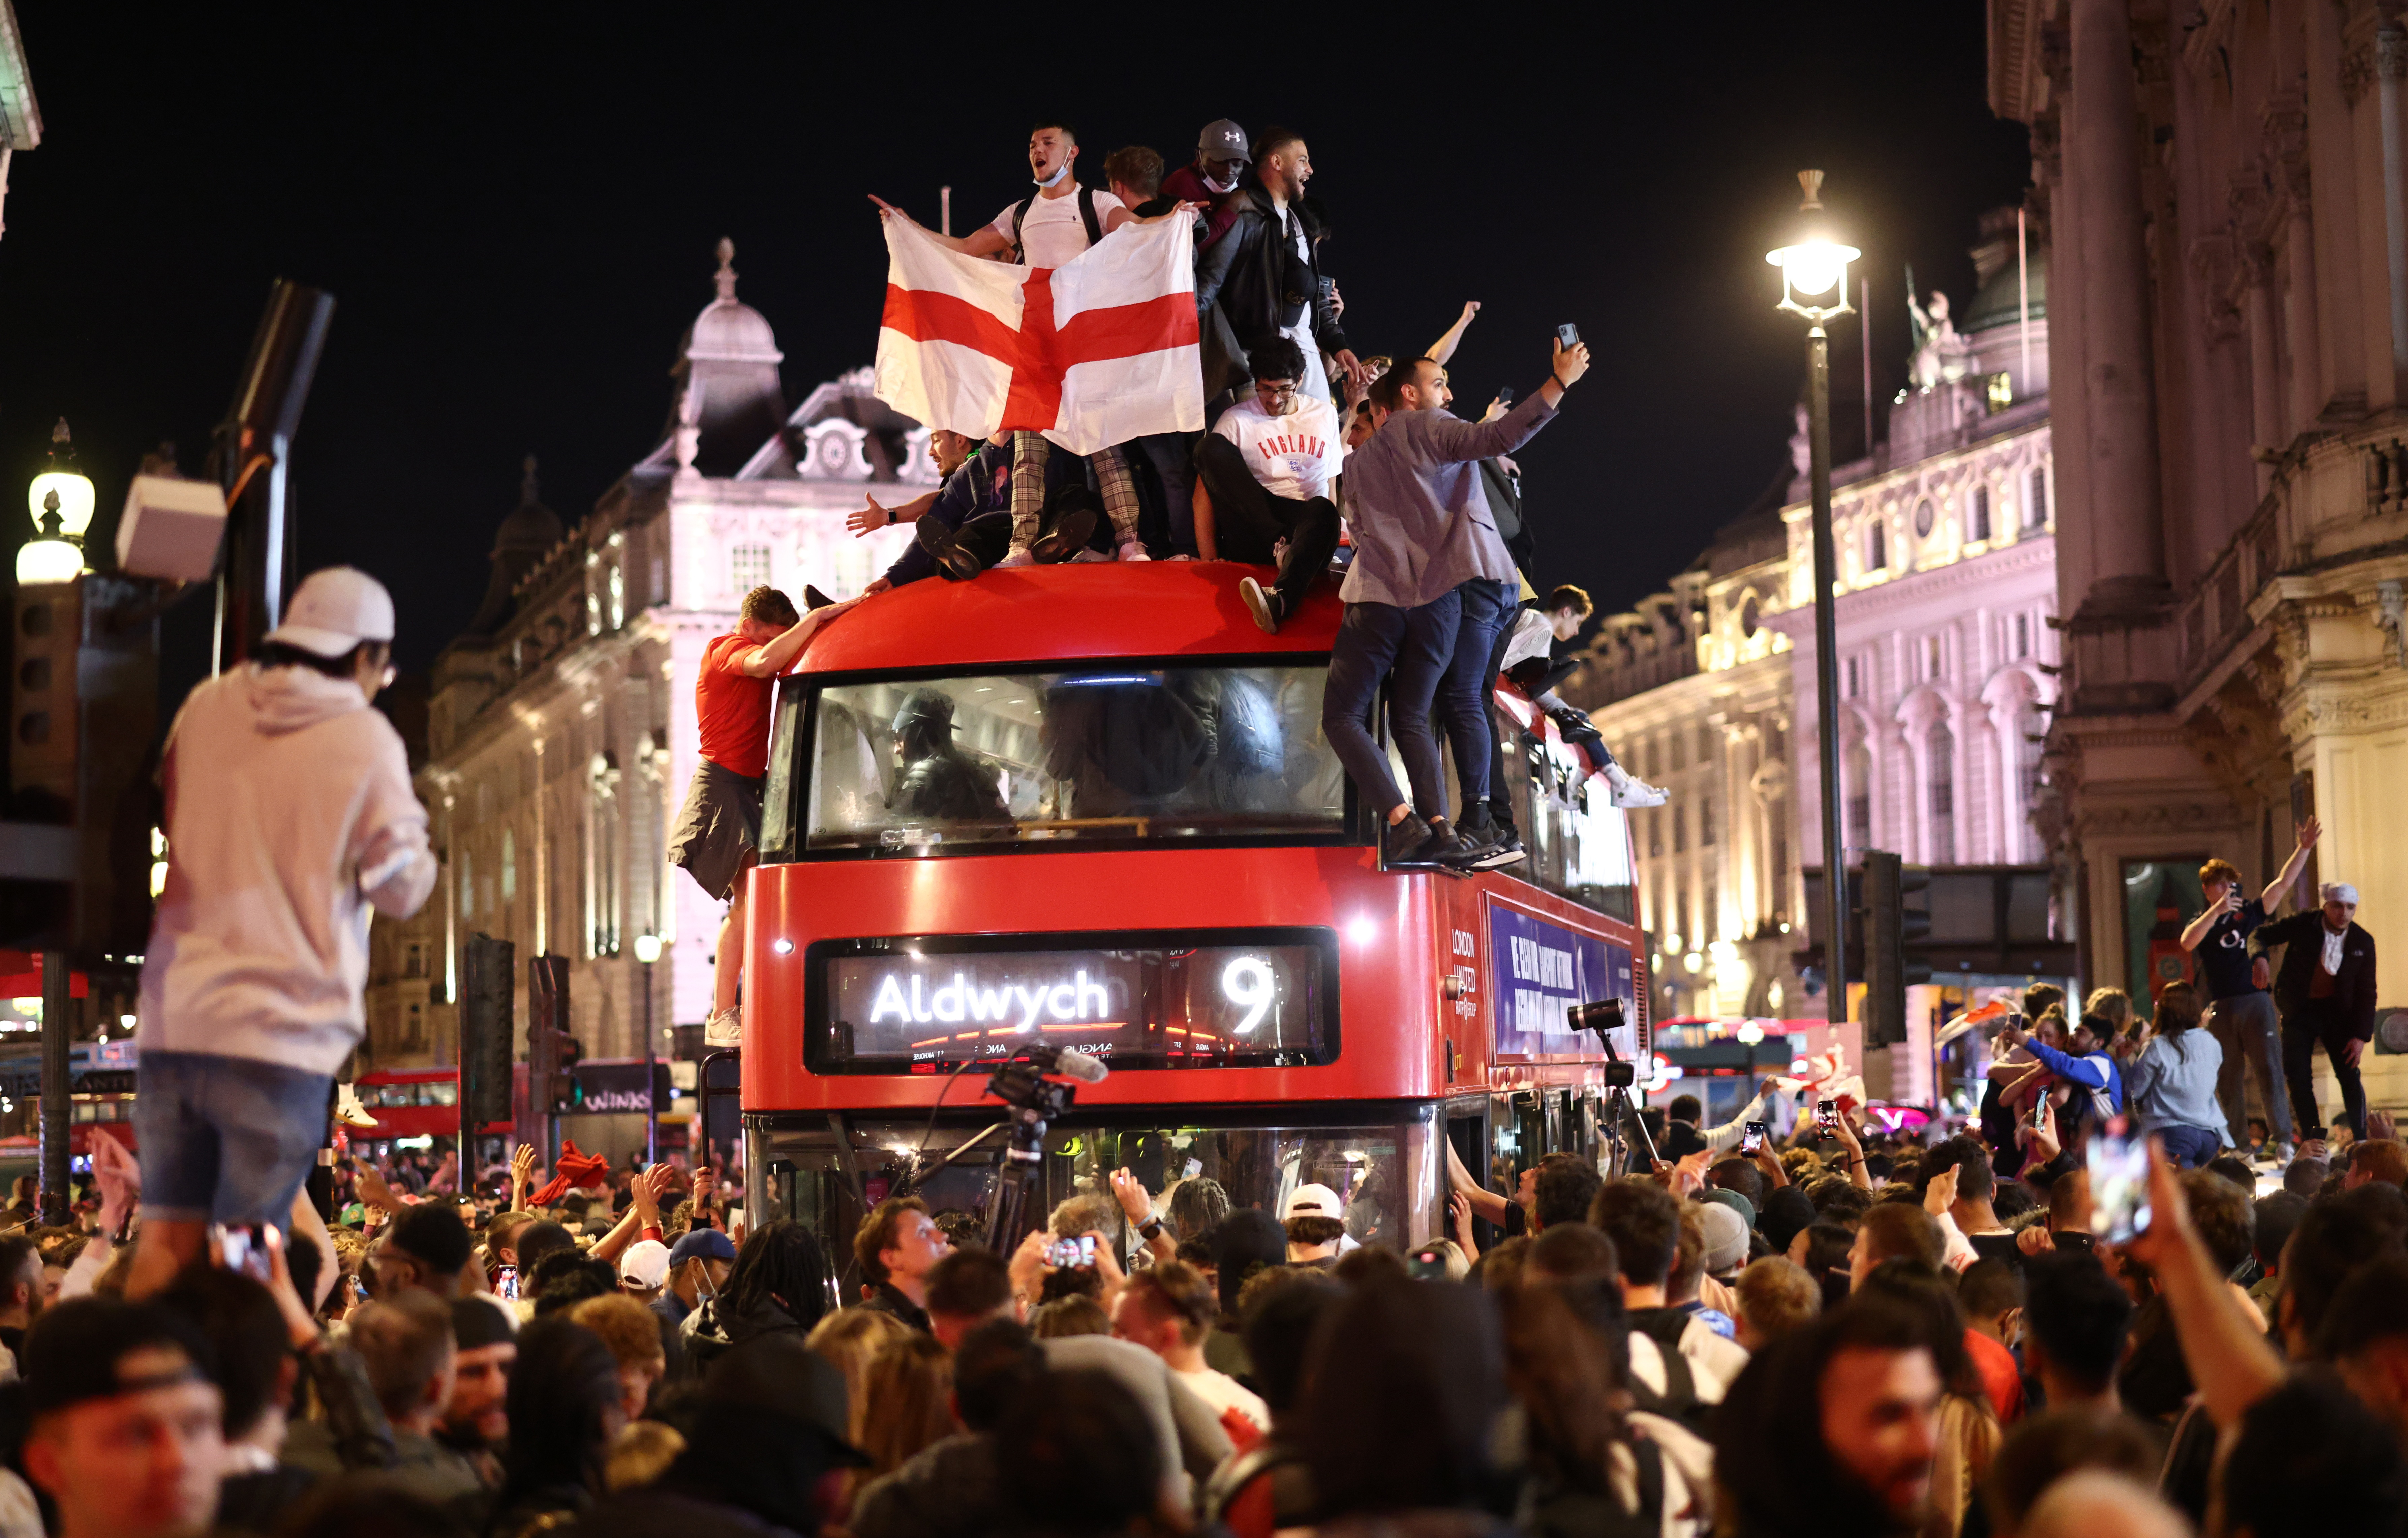 Soccer Football - Euro 2020 - Fans gather for England v Denmark - Piccadilly Circus, London, Britain - July 7, 2021 England fans celebrate after the match